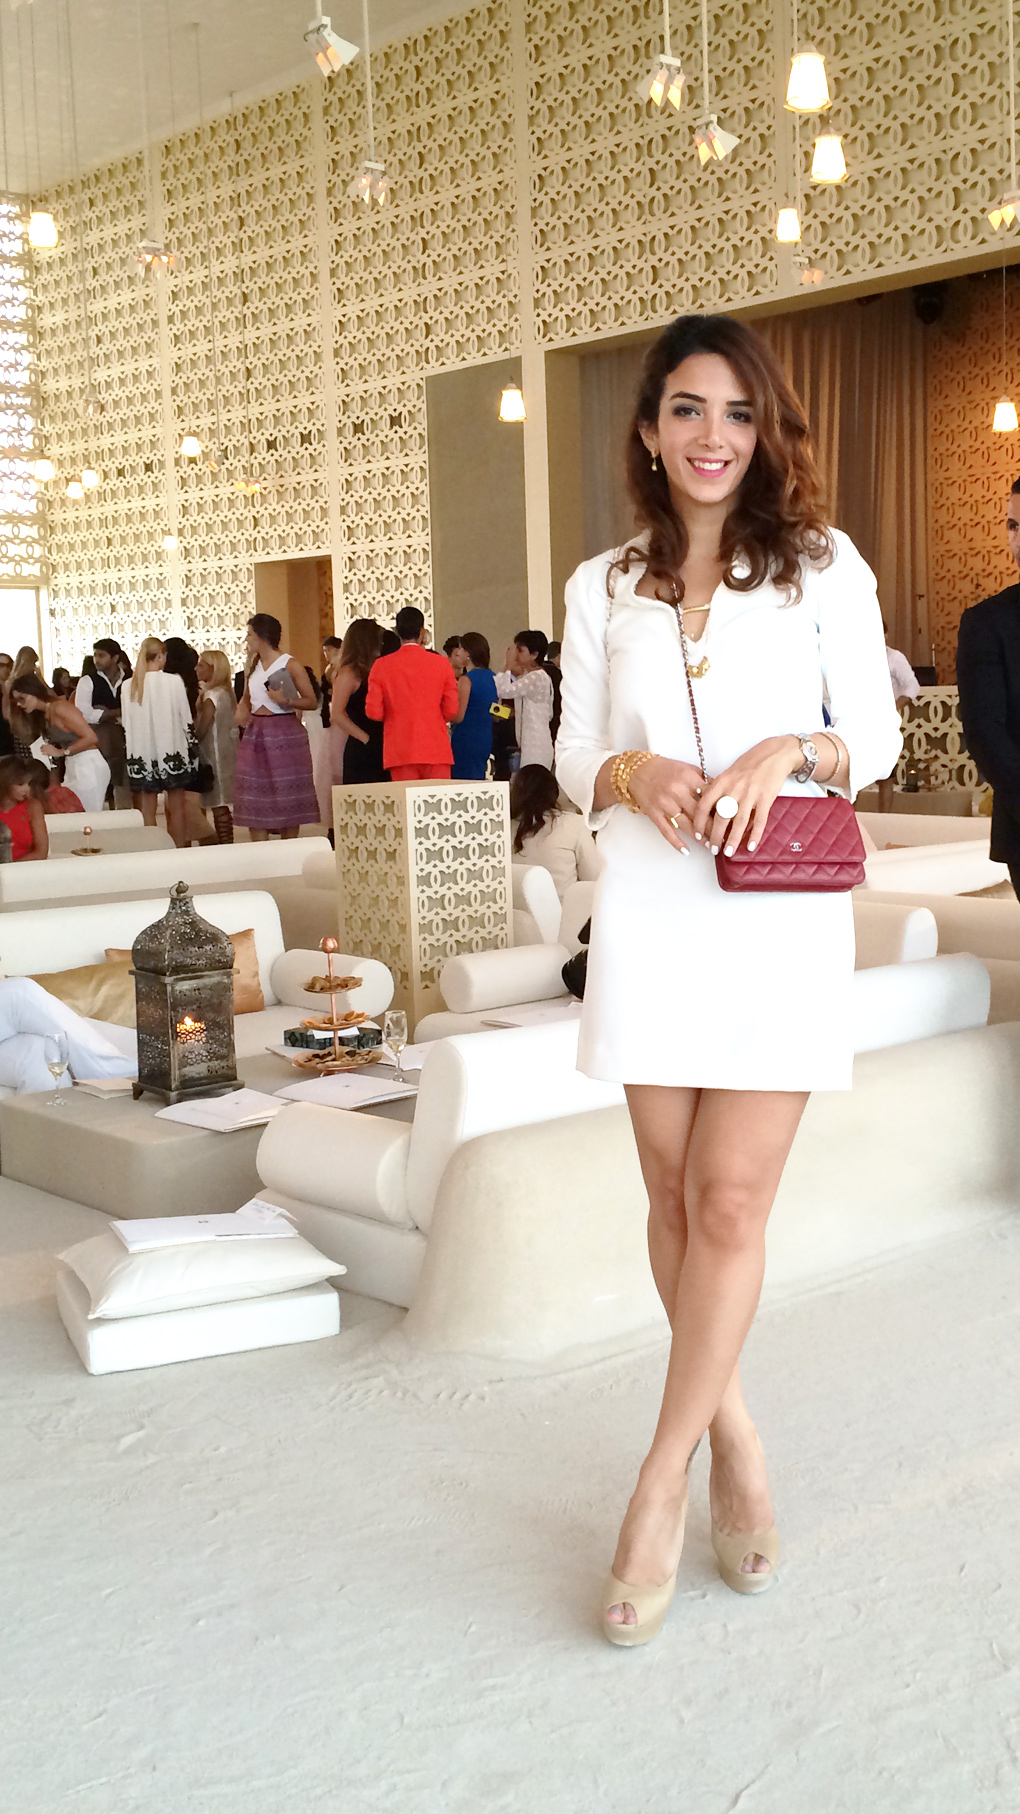 Lyla_Loves_Fashion_Chanel_Cruise_Dubai_201415_Dairy_224412